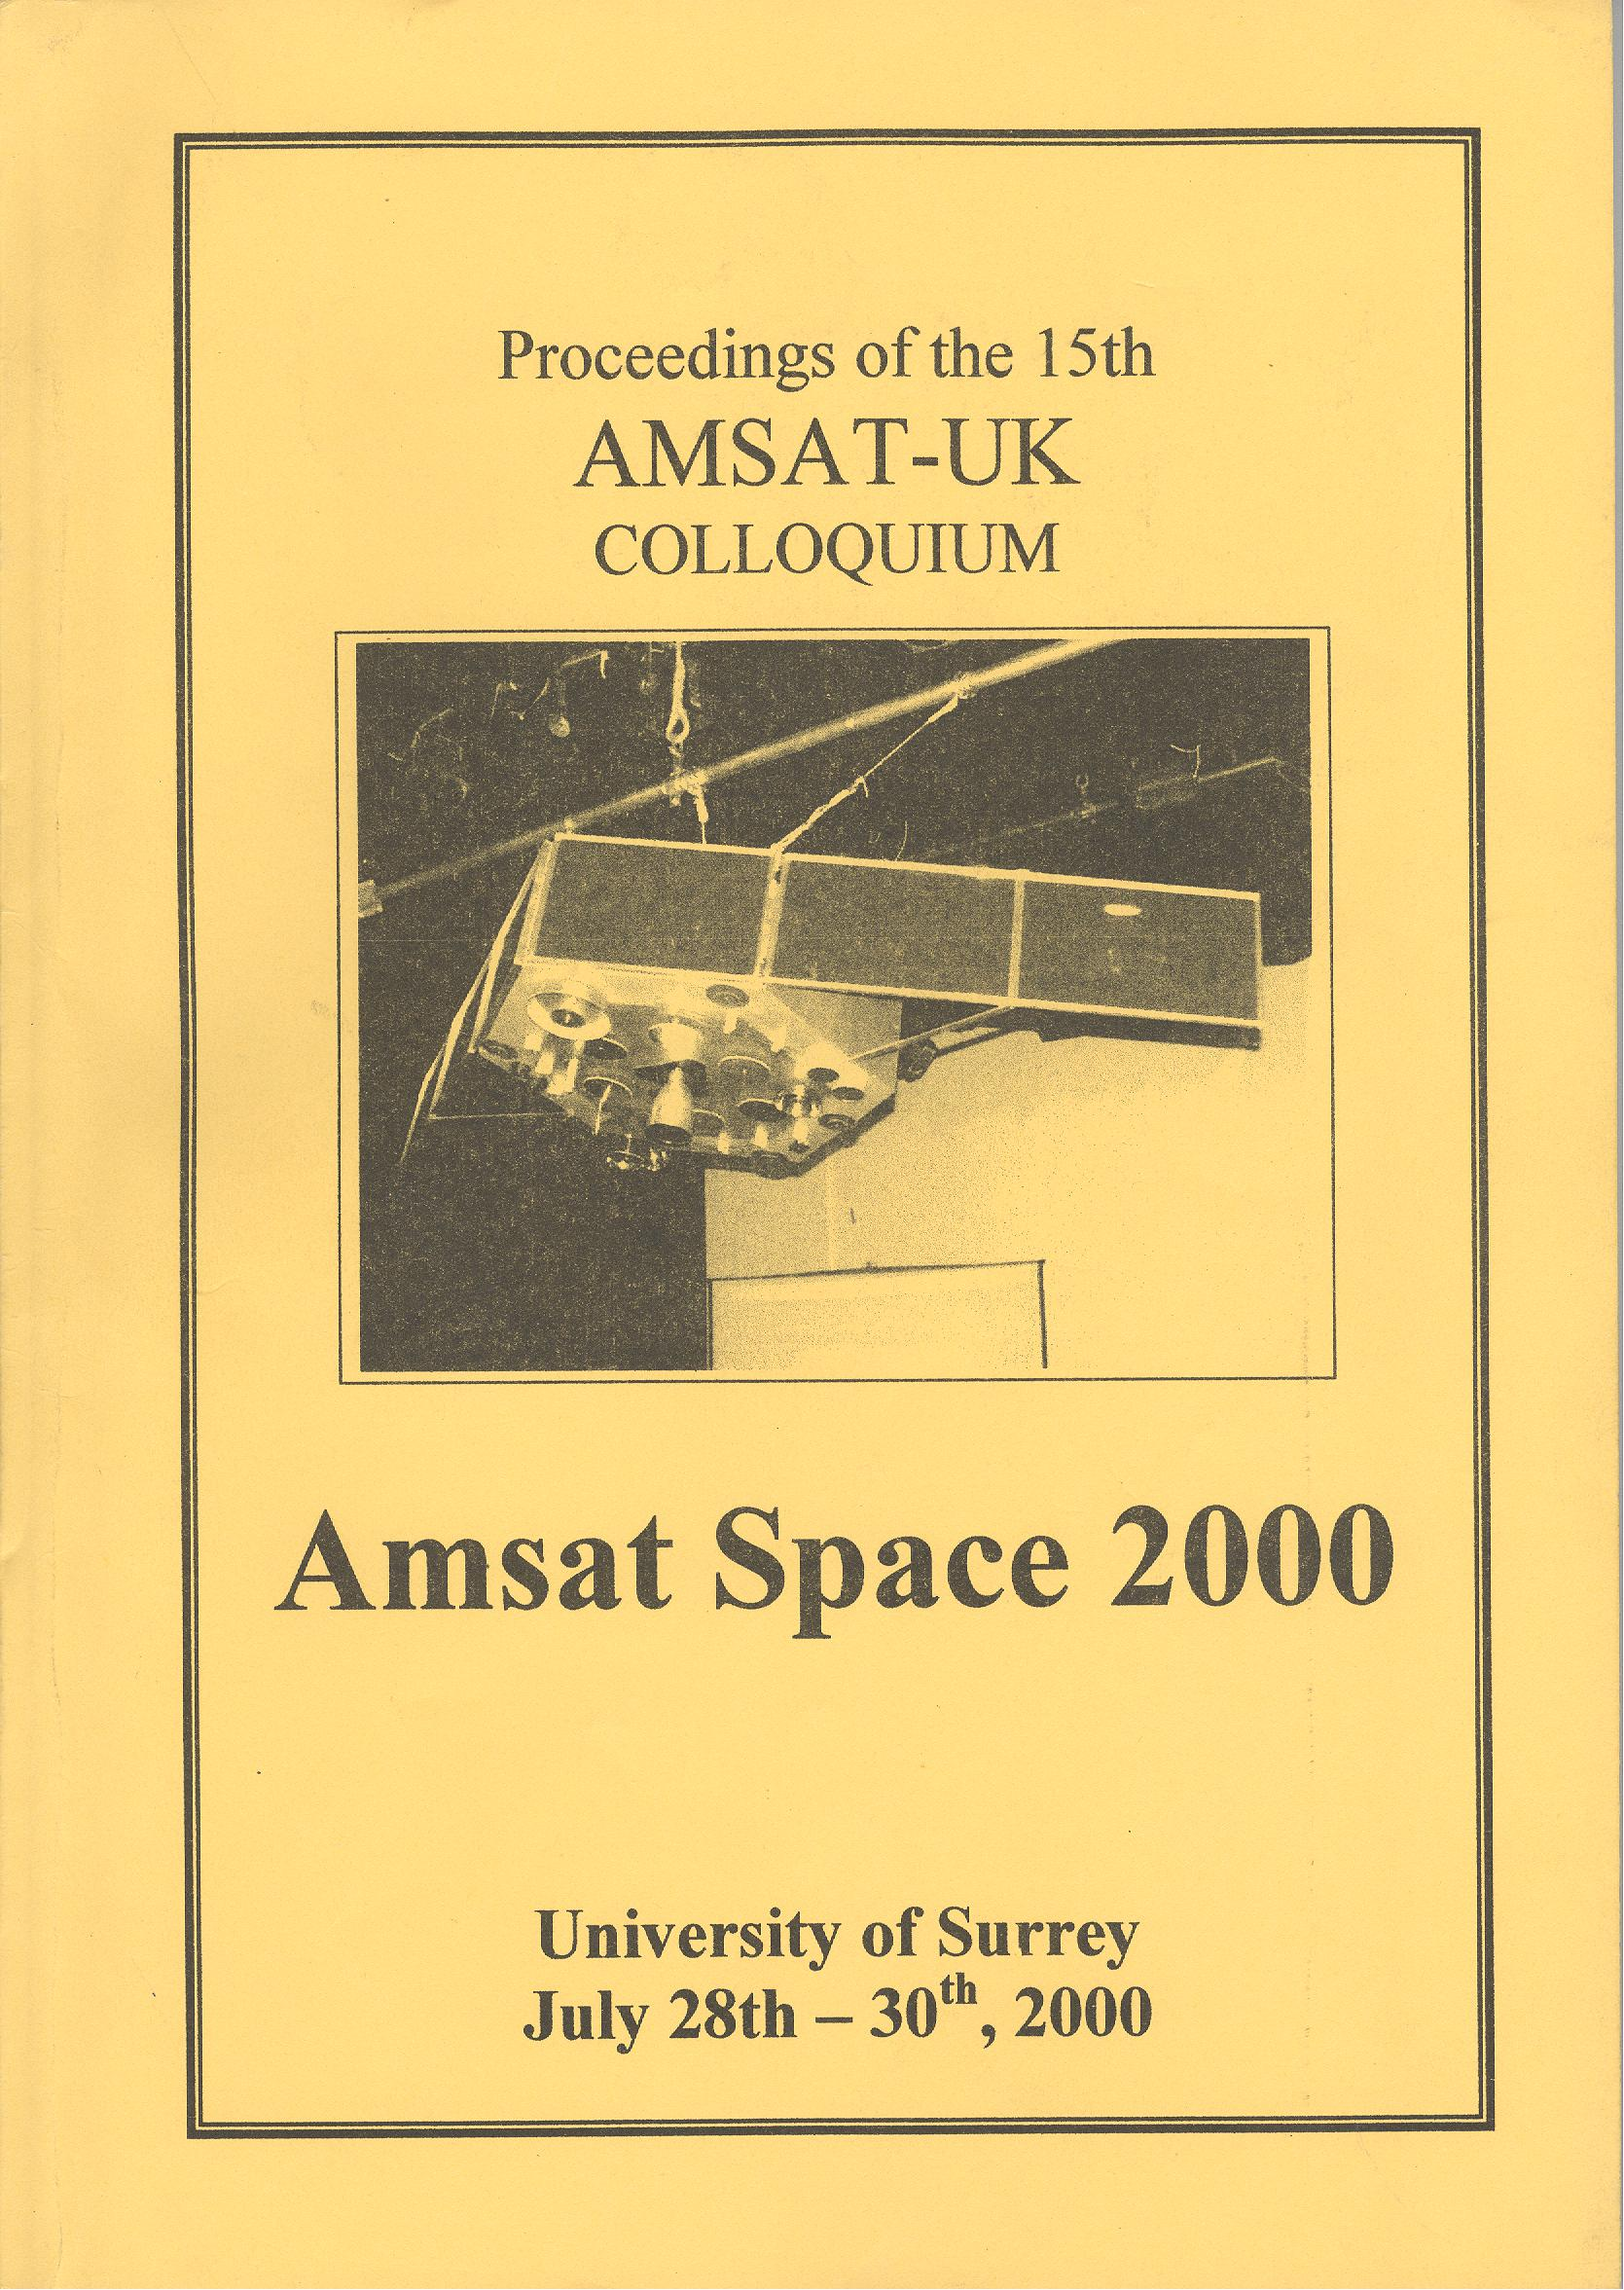 The Proceedings of the 15th AMSAT-UK Colloquium - Amsat Space 2000